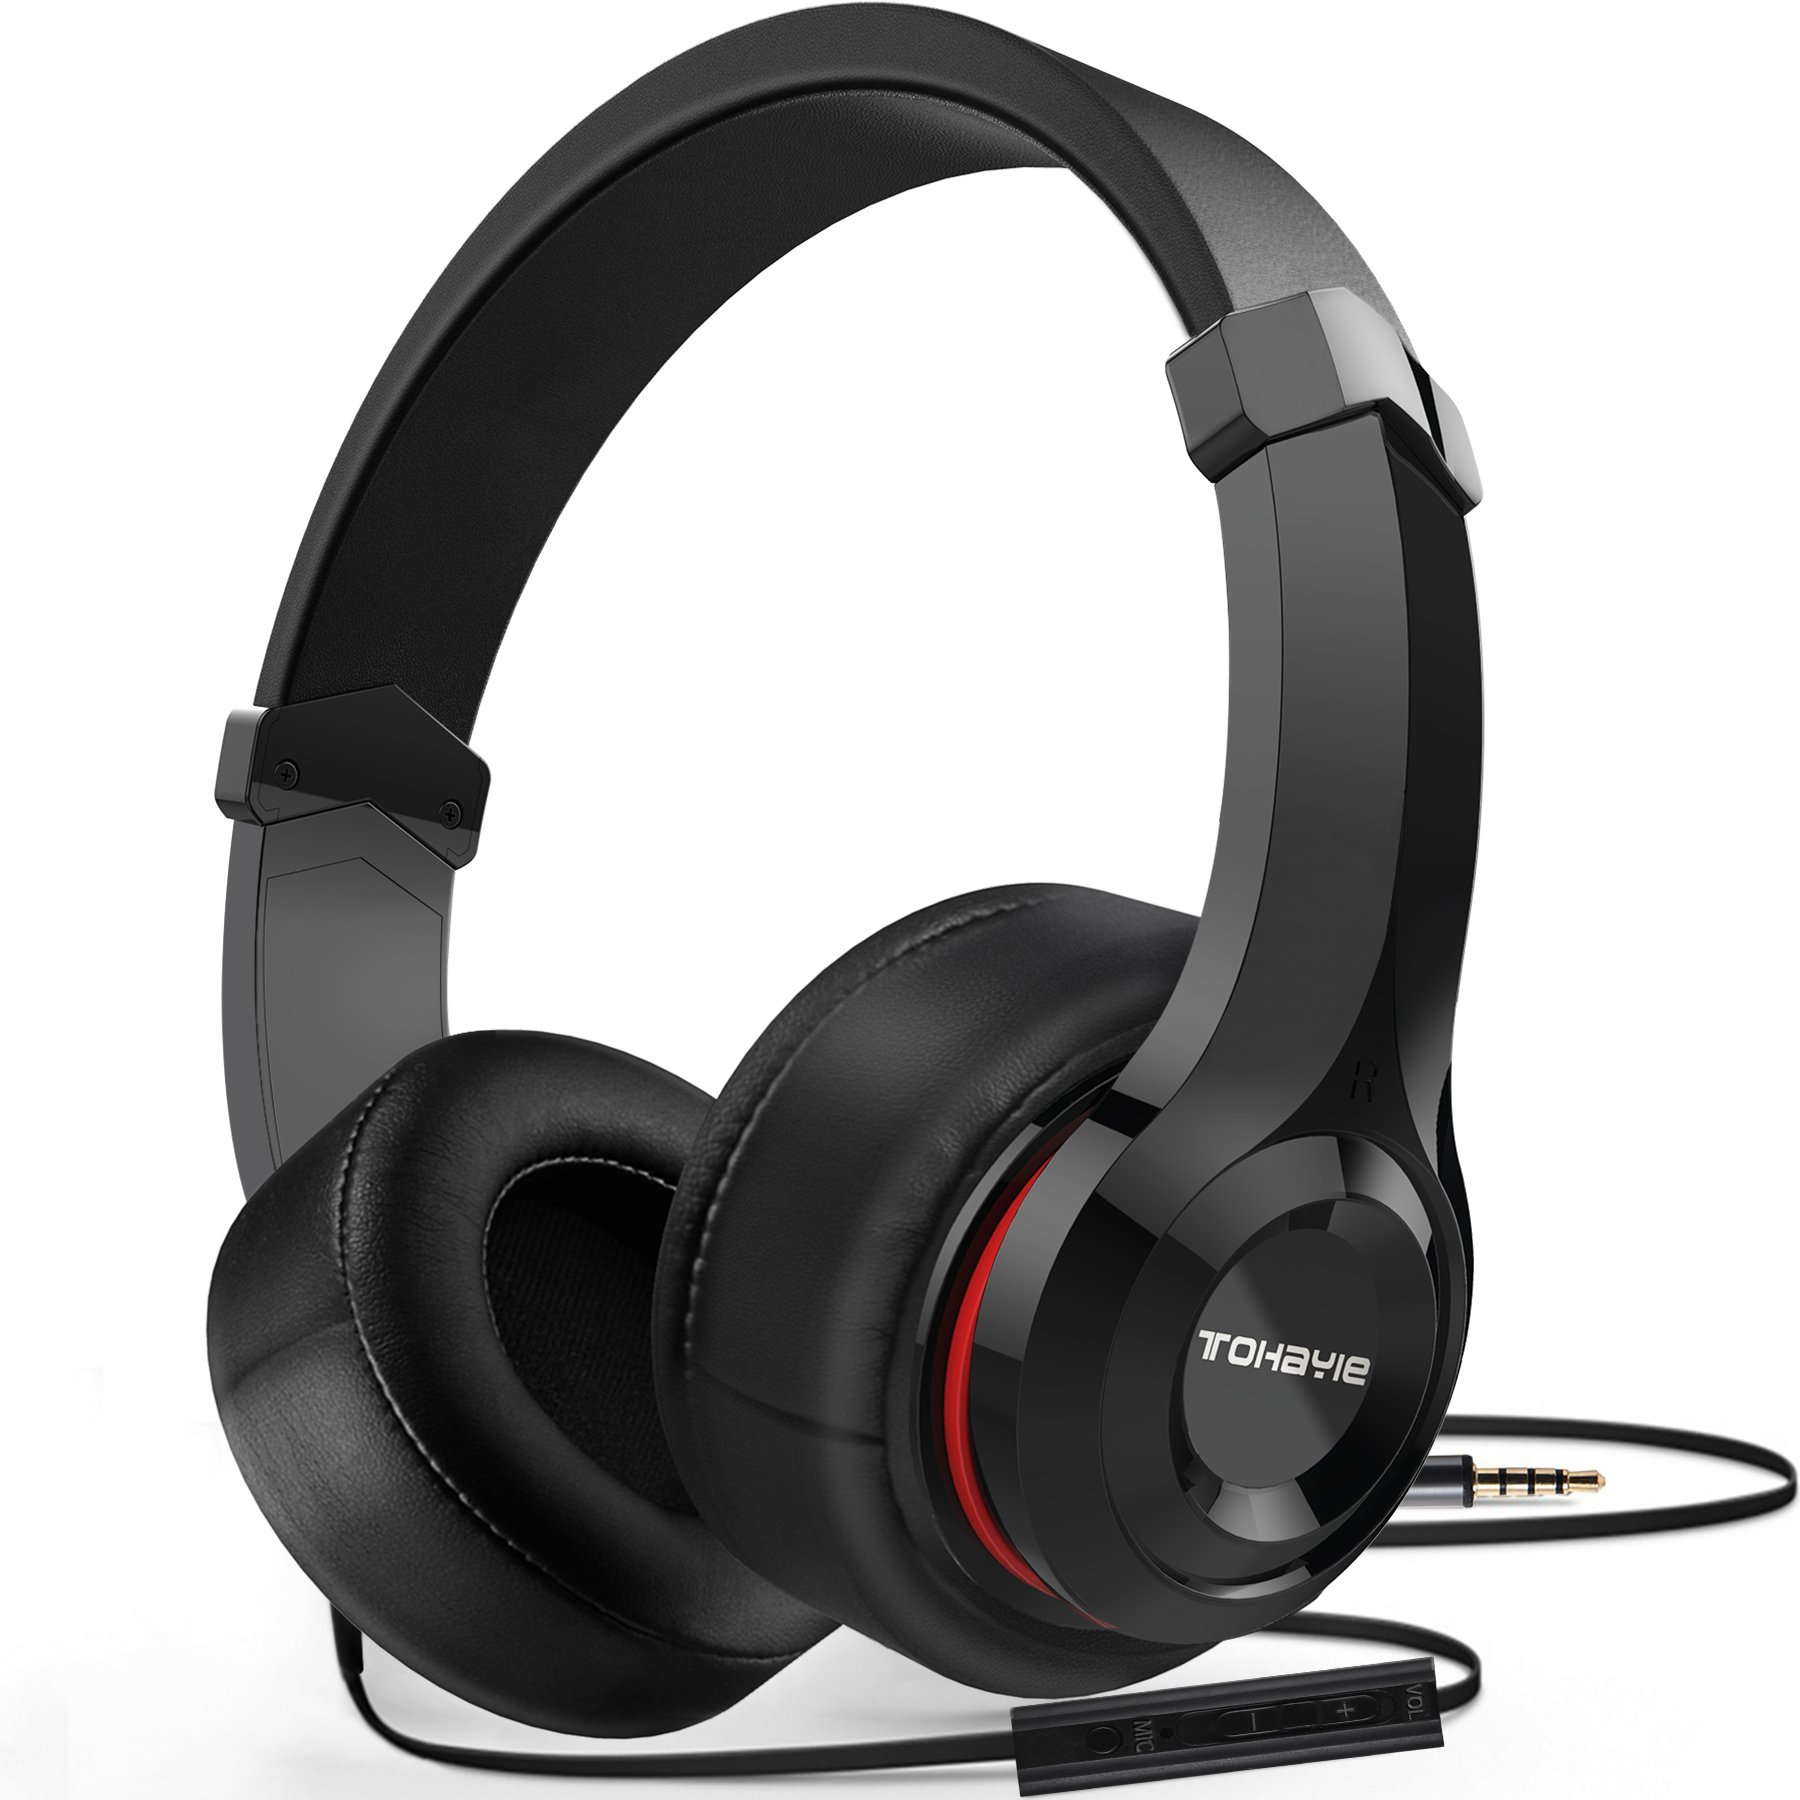 Over Ear Headphones, ToHayie Wired Stereo Headphones, Lightweight Headsets with Volume Control and Microphone,3.5mm Plug for Cellphone,Laptop,Computer,Perfect for Movies and Kids